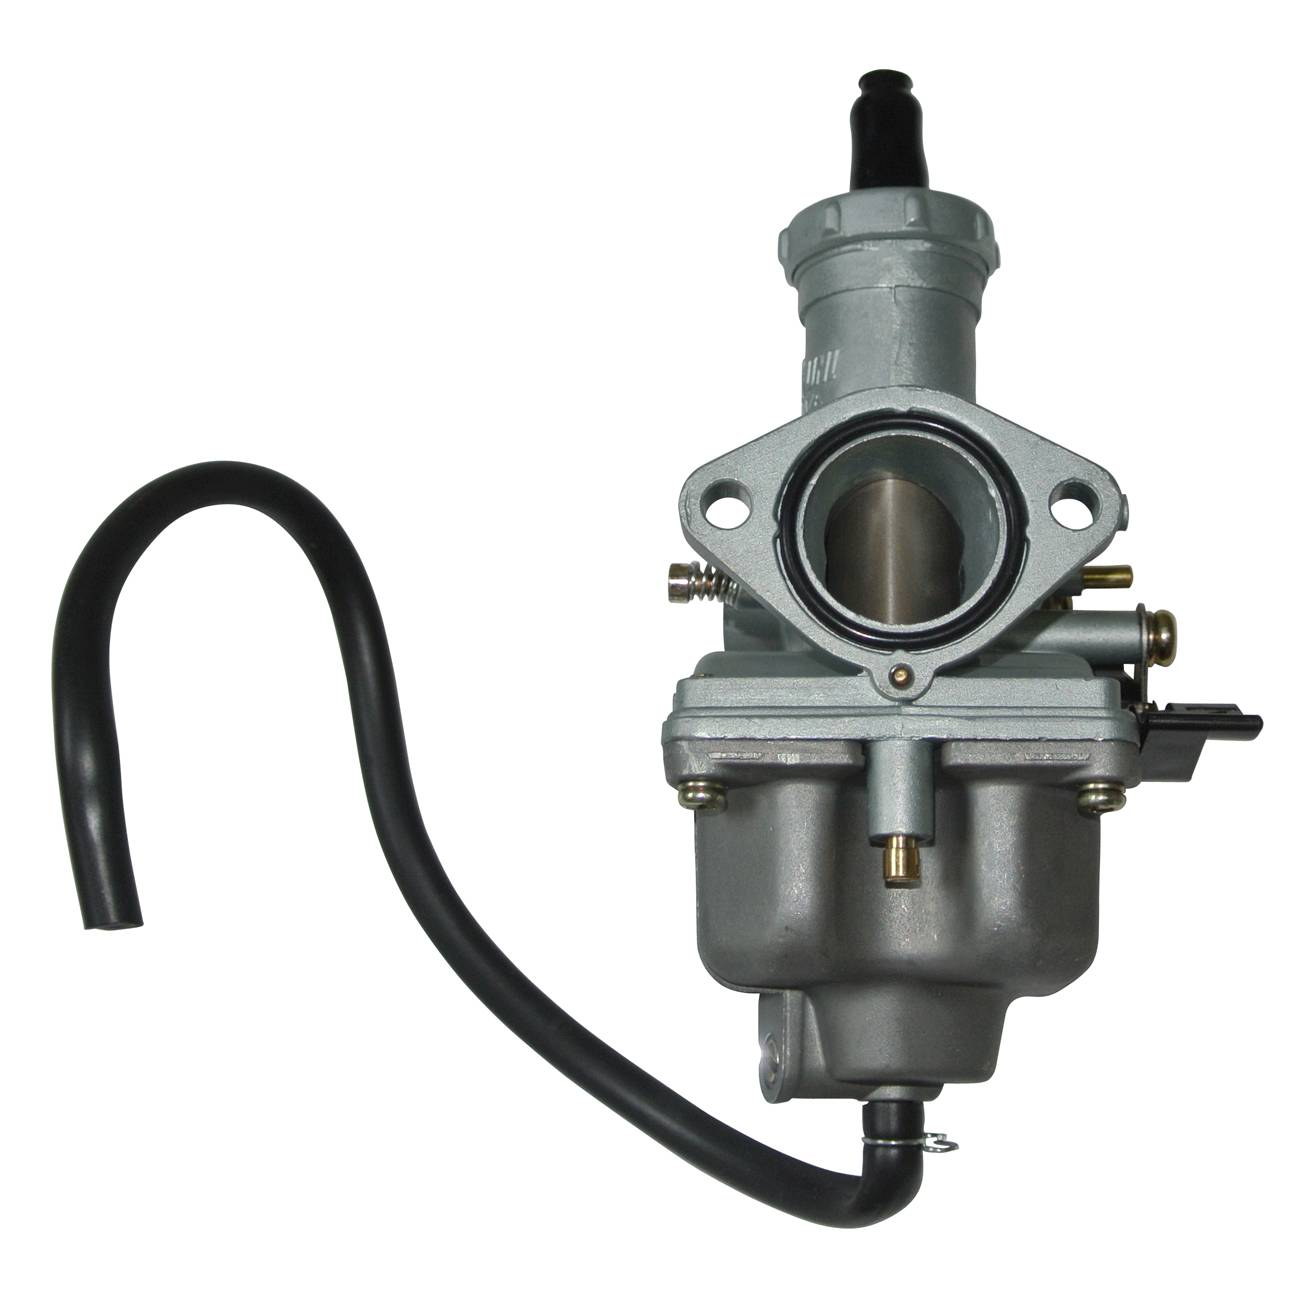 27mm Carburetor 150 200cc Lever Choke for 4-stroke CG 150cc 200cc 250cc ATVs Go Karts and Dirt Bikes.